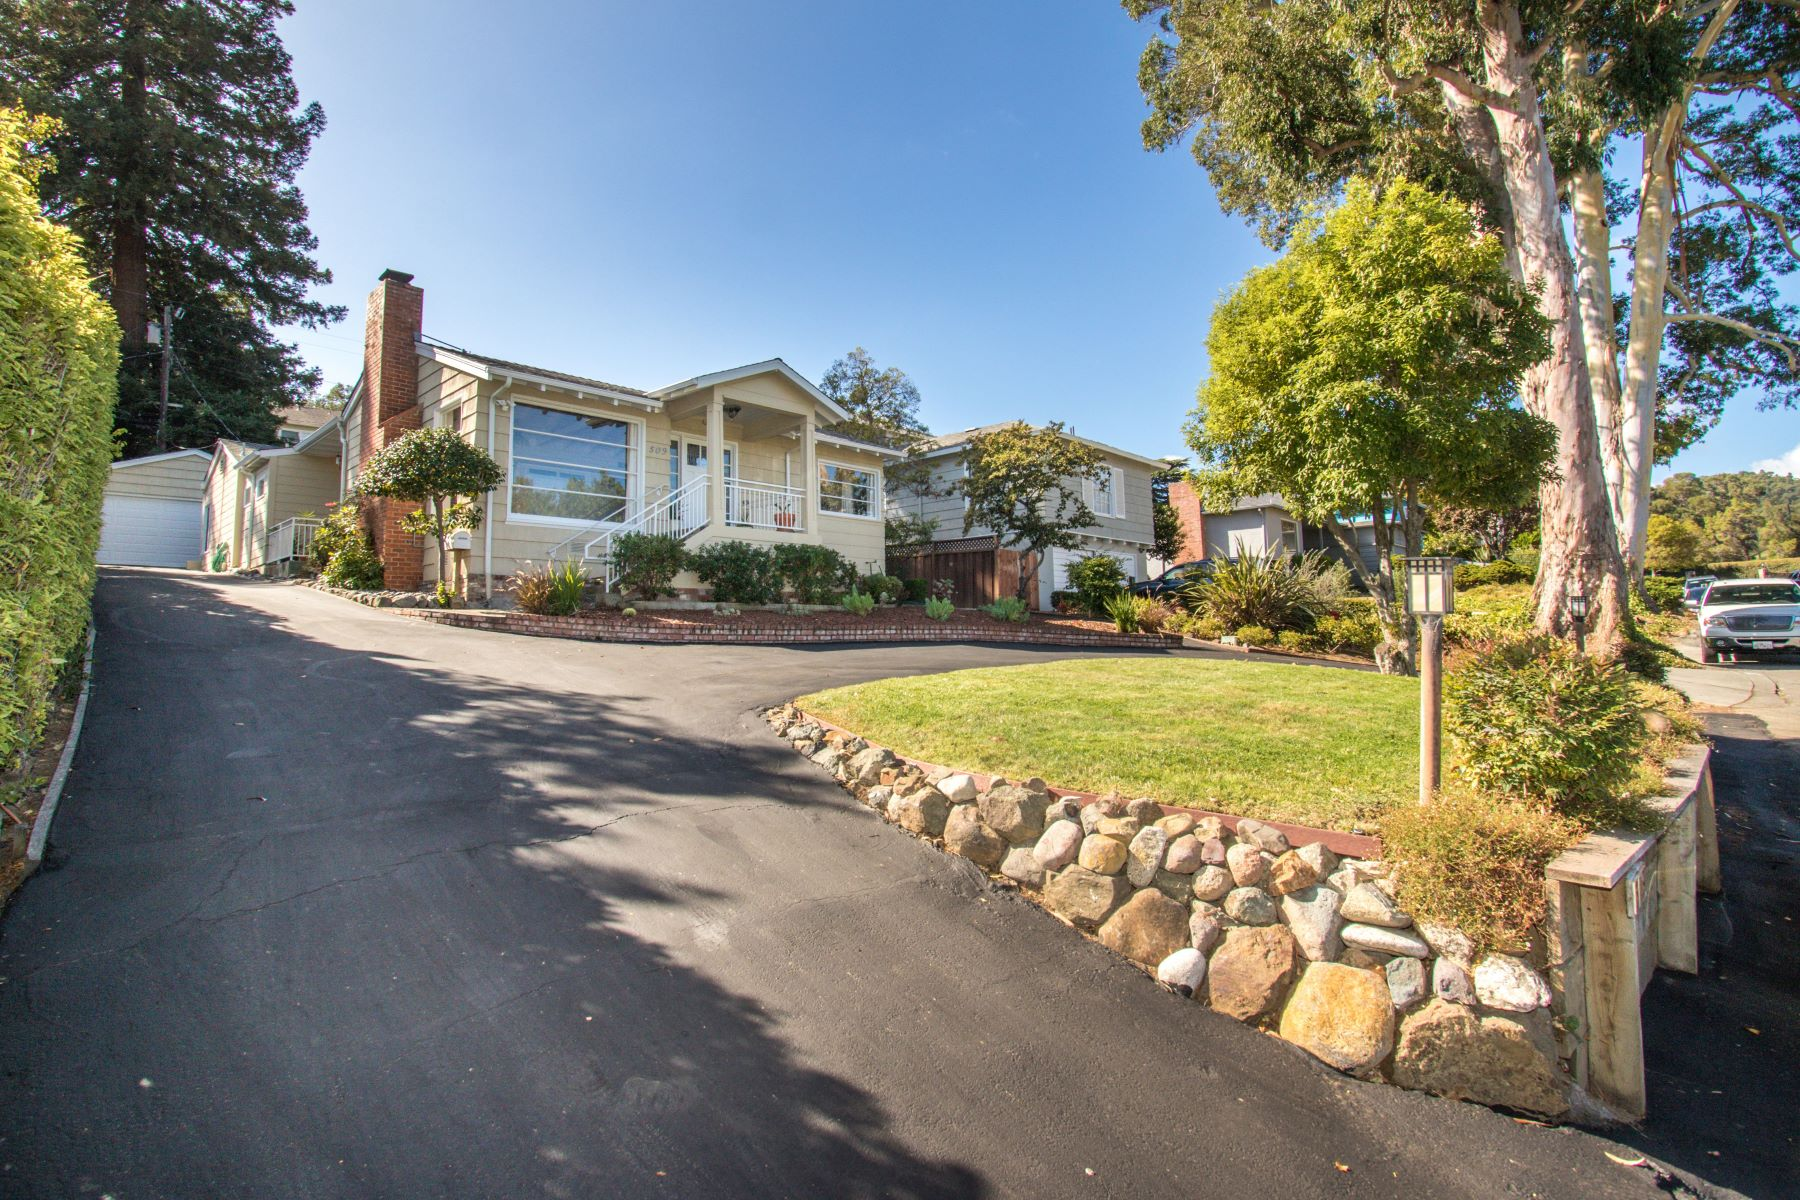 Single Family Homes for Sale at Delightful Recently Renovated Home 509 Madera Drive San Mateo, California 94403 United States